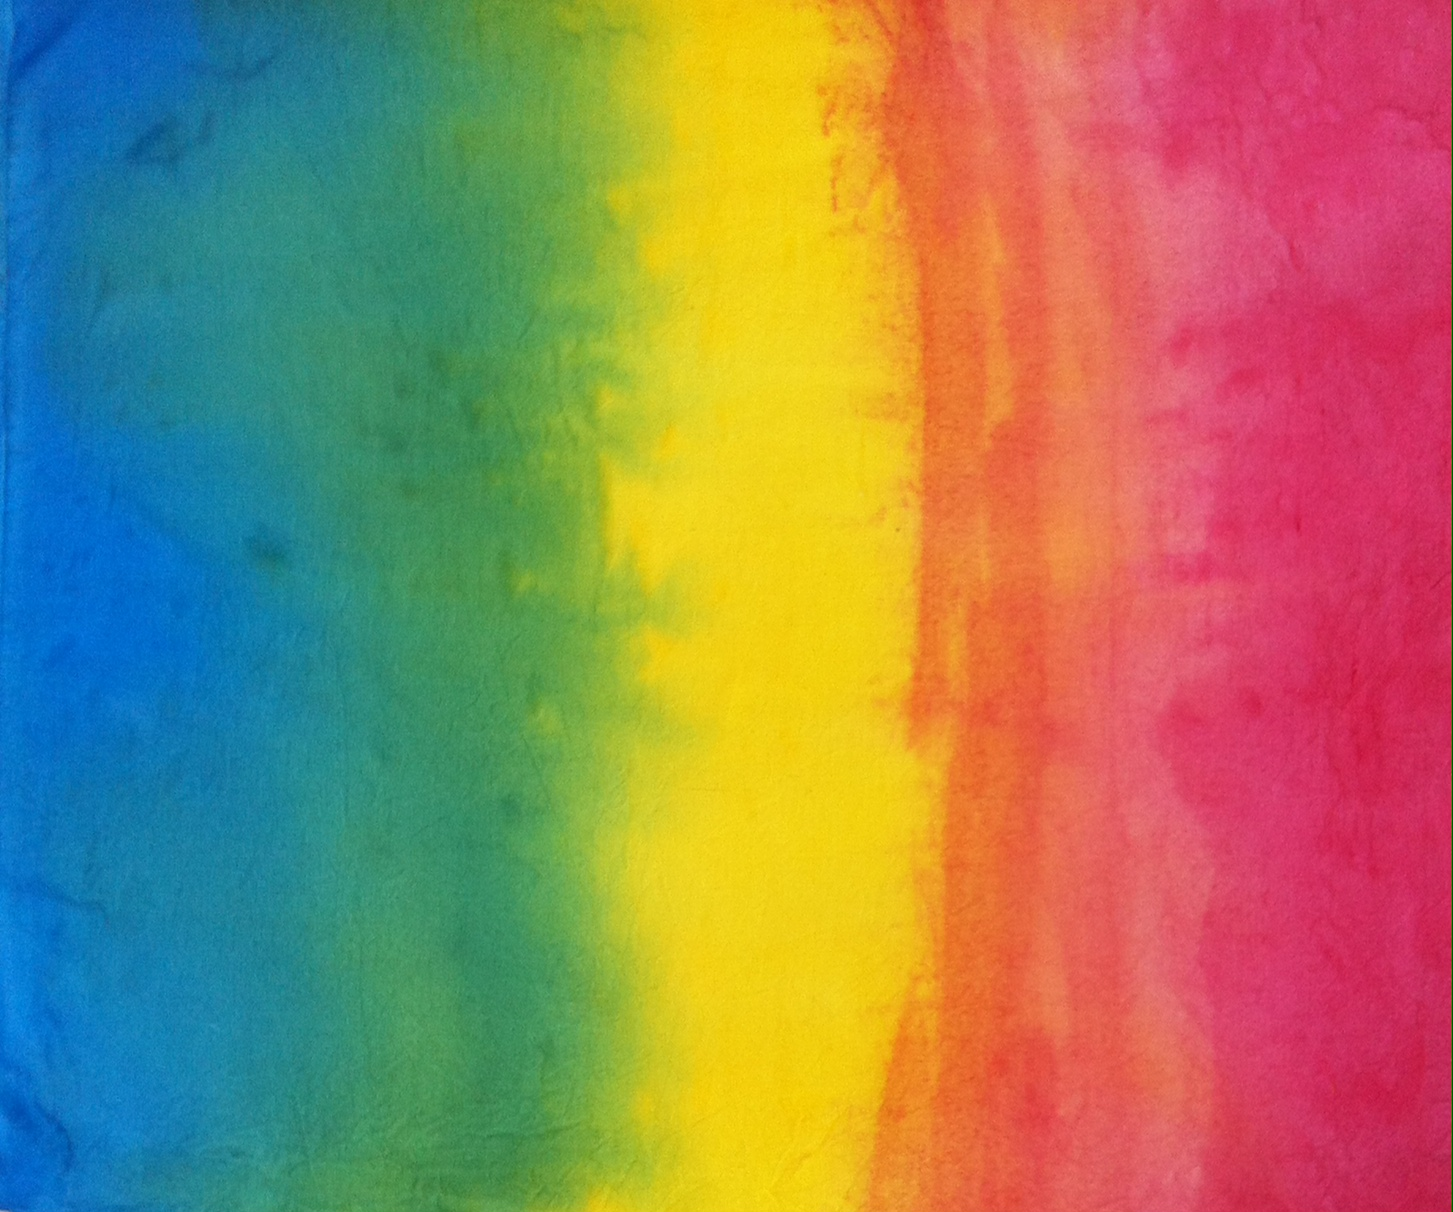 Hand Painted Soft Cotton Fabric Blend Of Blue Red Yellow Colors For All